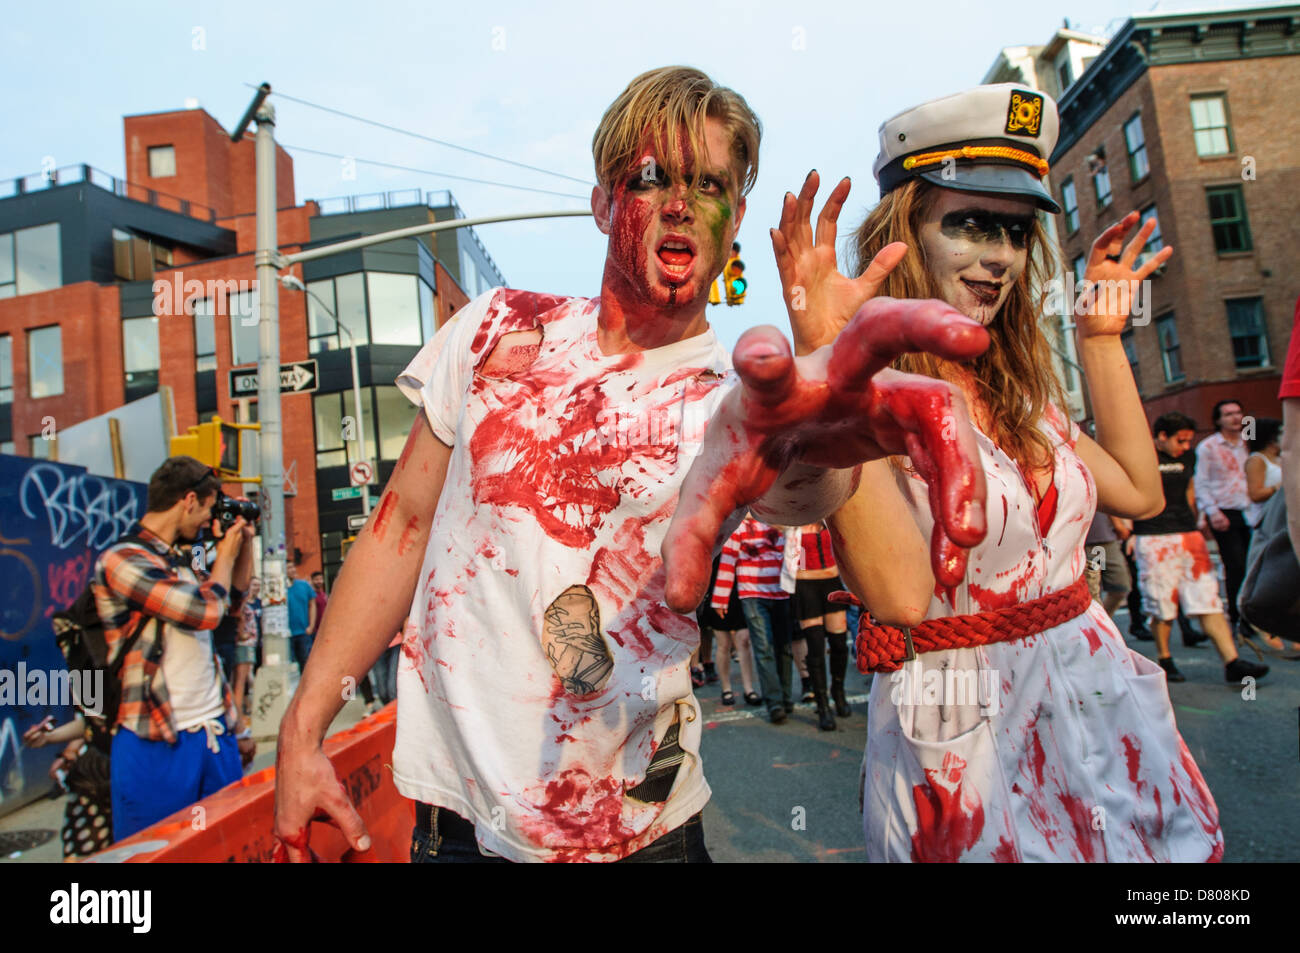 Participants of the NYC Zombie Crawl, Williamsburg. May 27, 2012 - Stock Image